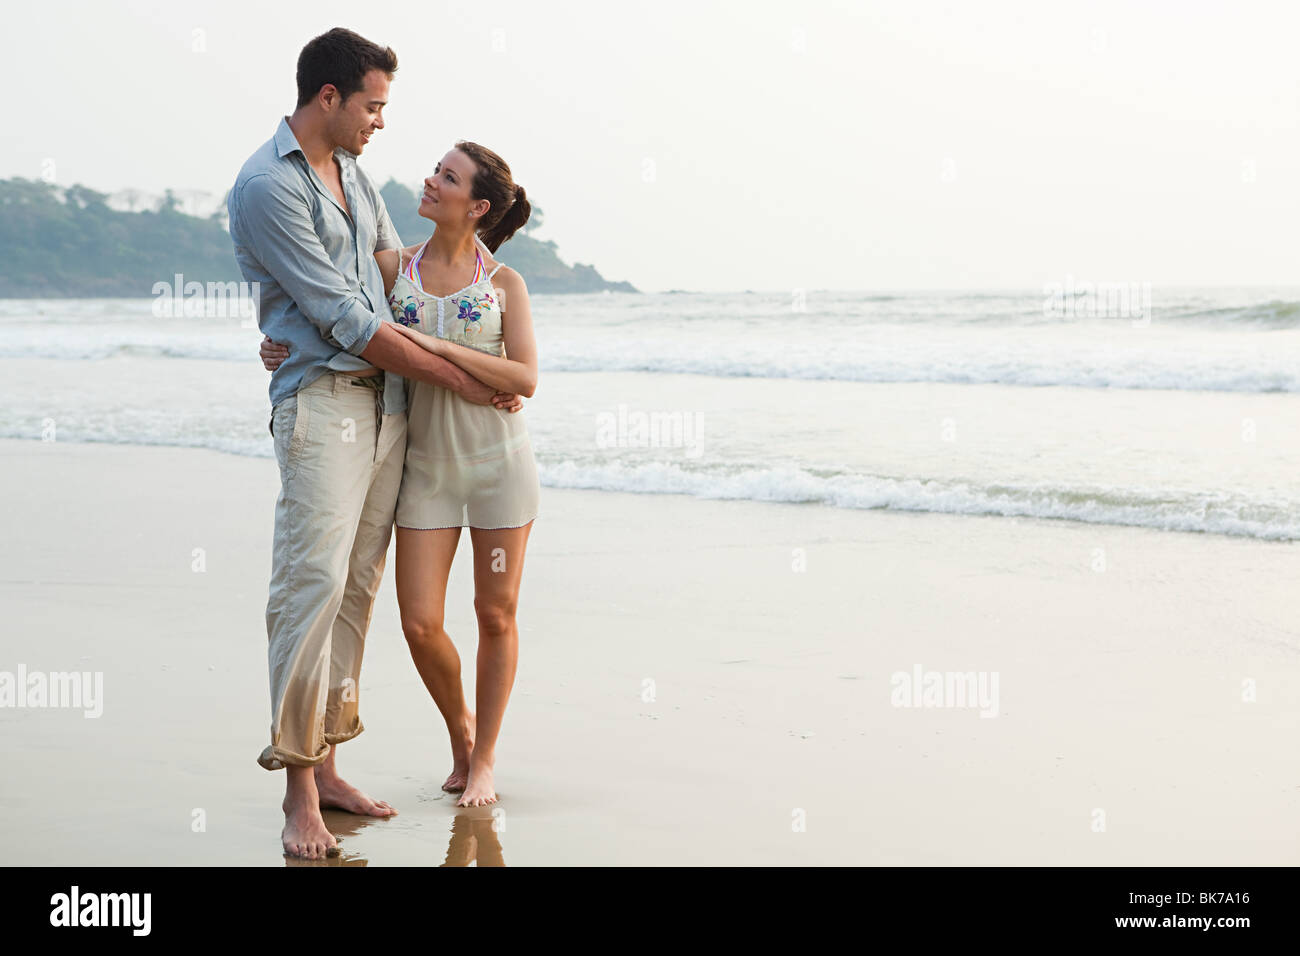 Couple by the ocean - Stock Image